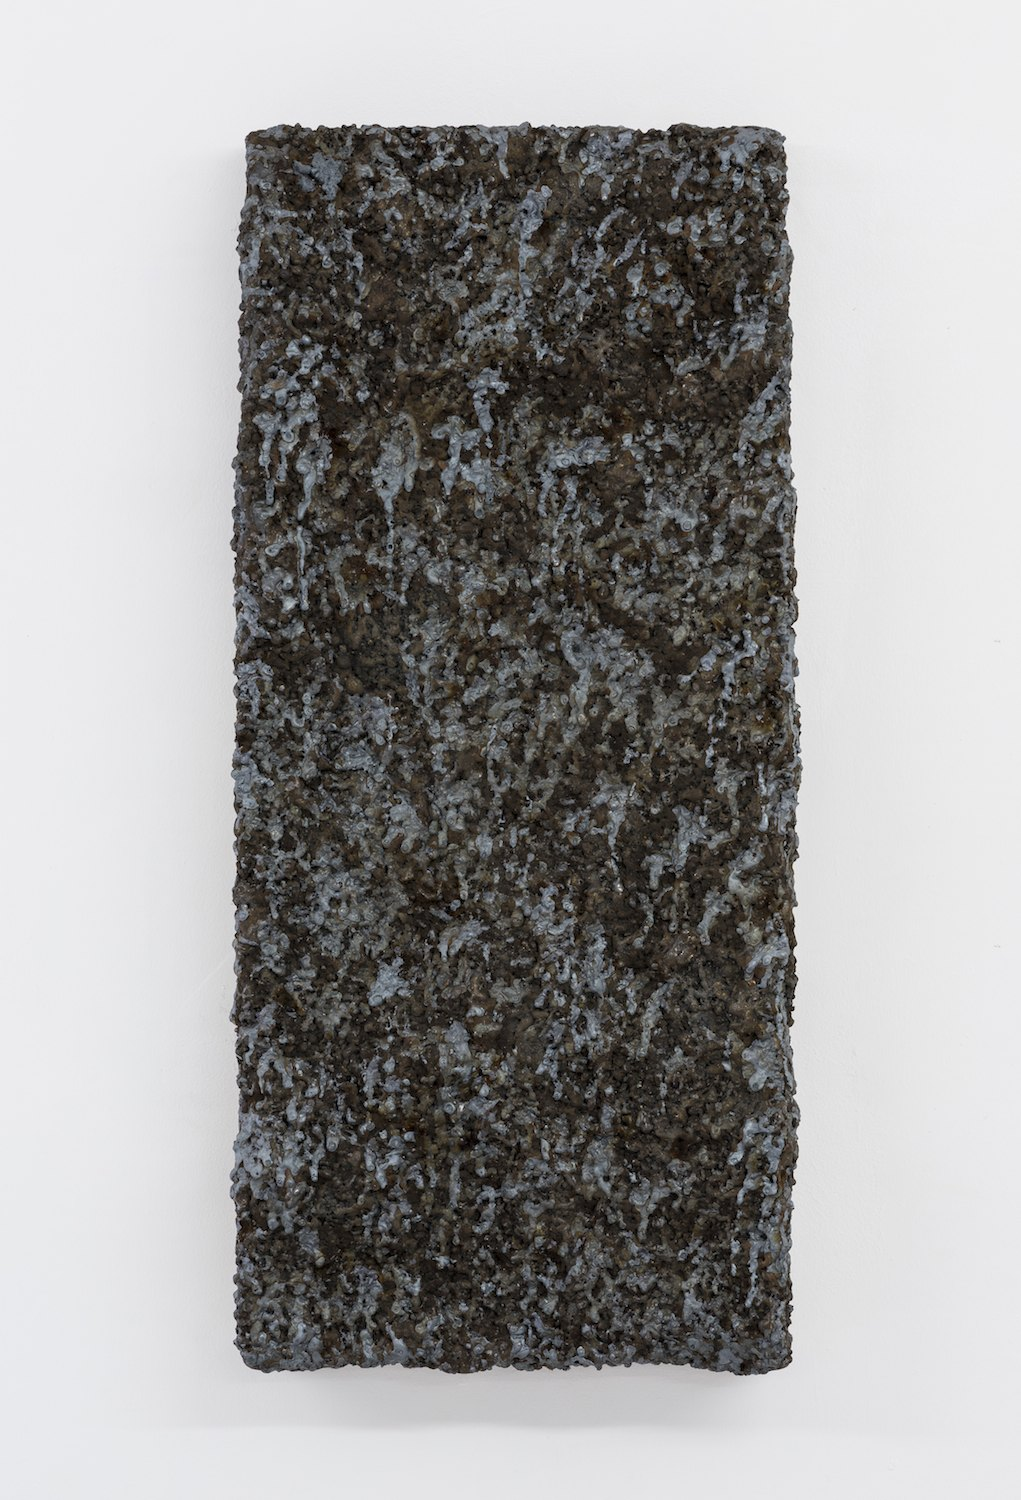 Surface Response (II), Thermic lance, slag, stainless steel